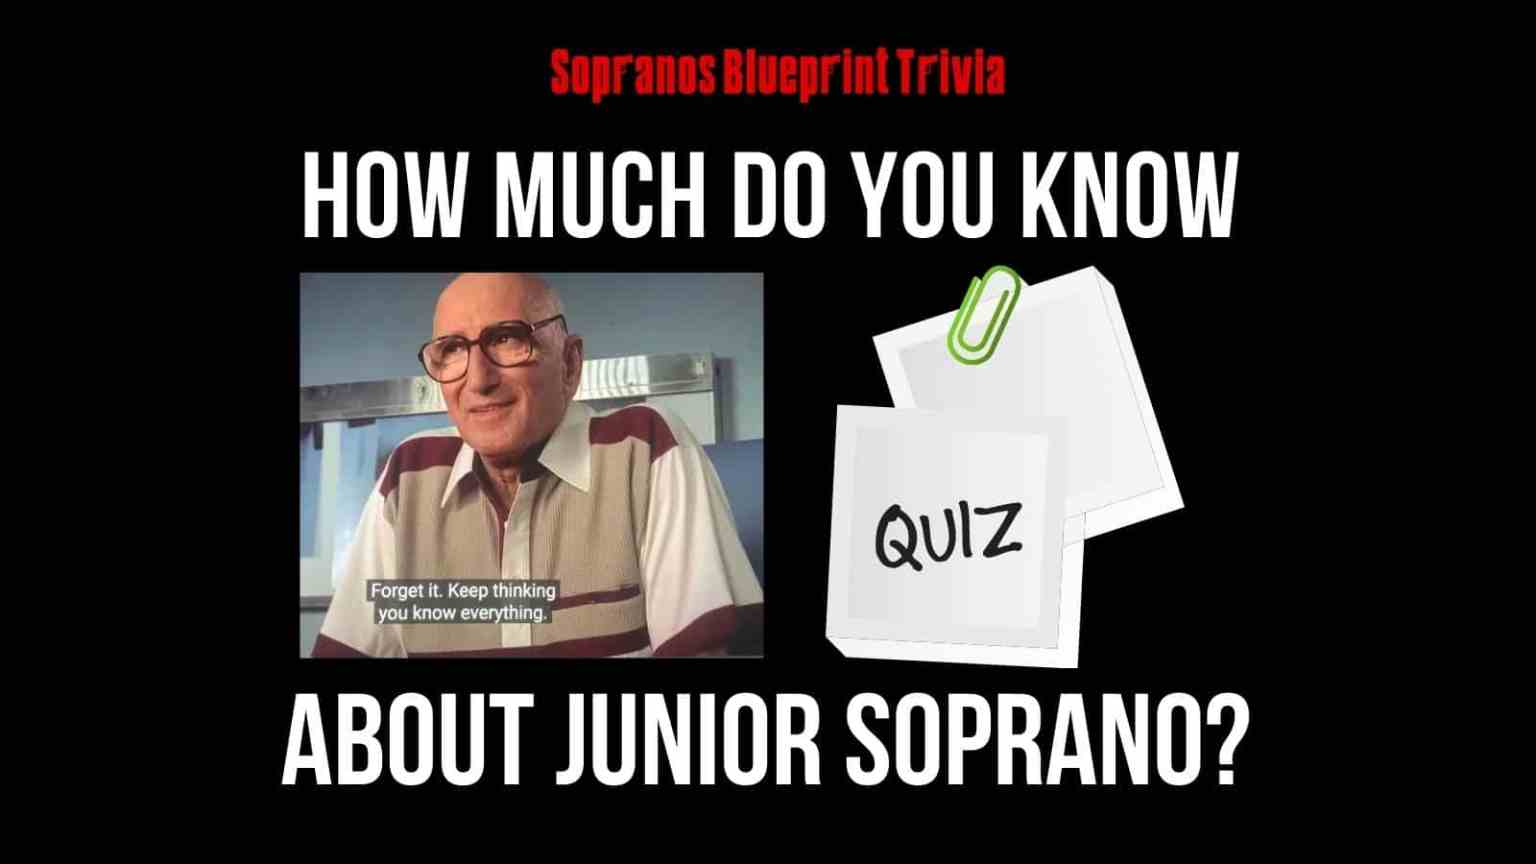 How Much Do You Know About Junior Soprano?